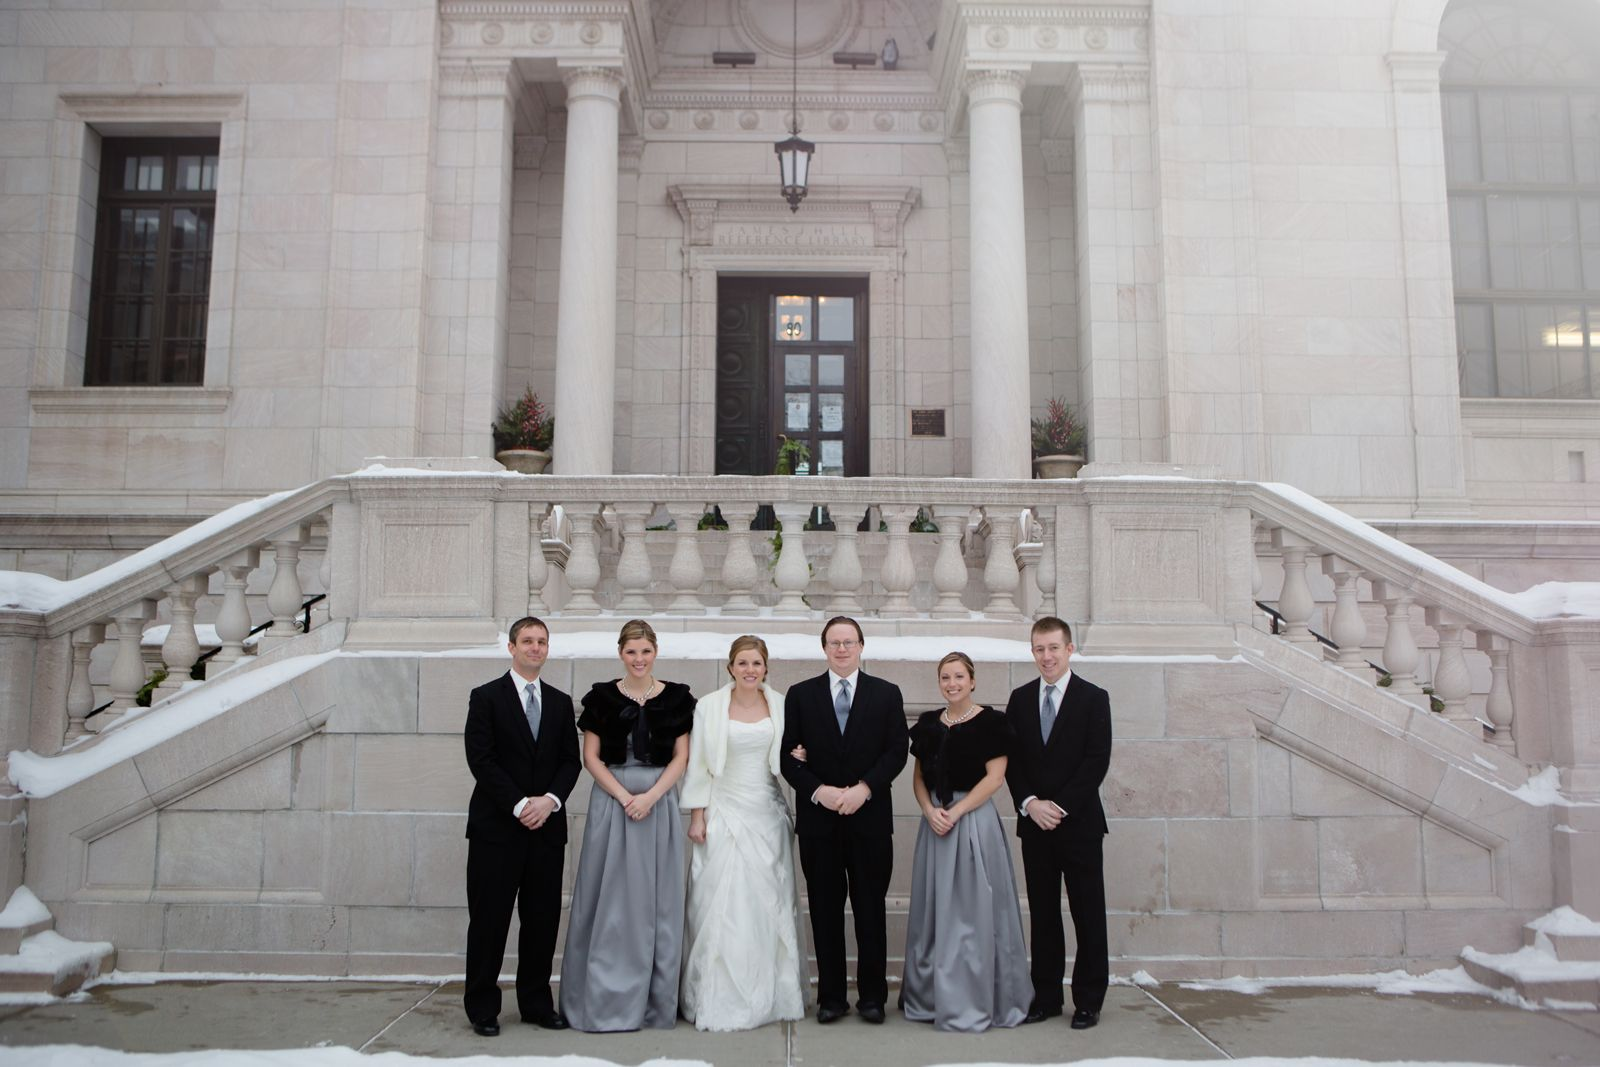 outdoor wedding venues minneapolis%0A Http   clewellphotography com  wedding  minneapolis  winter  snow